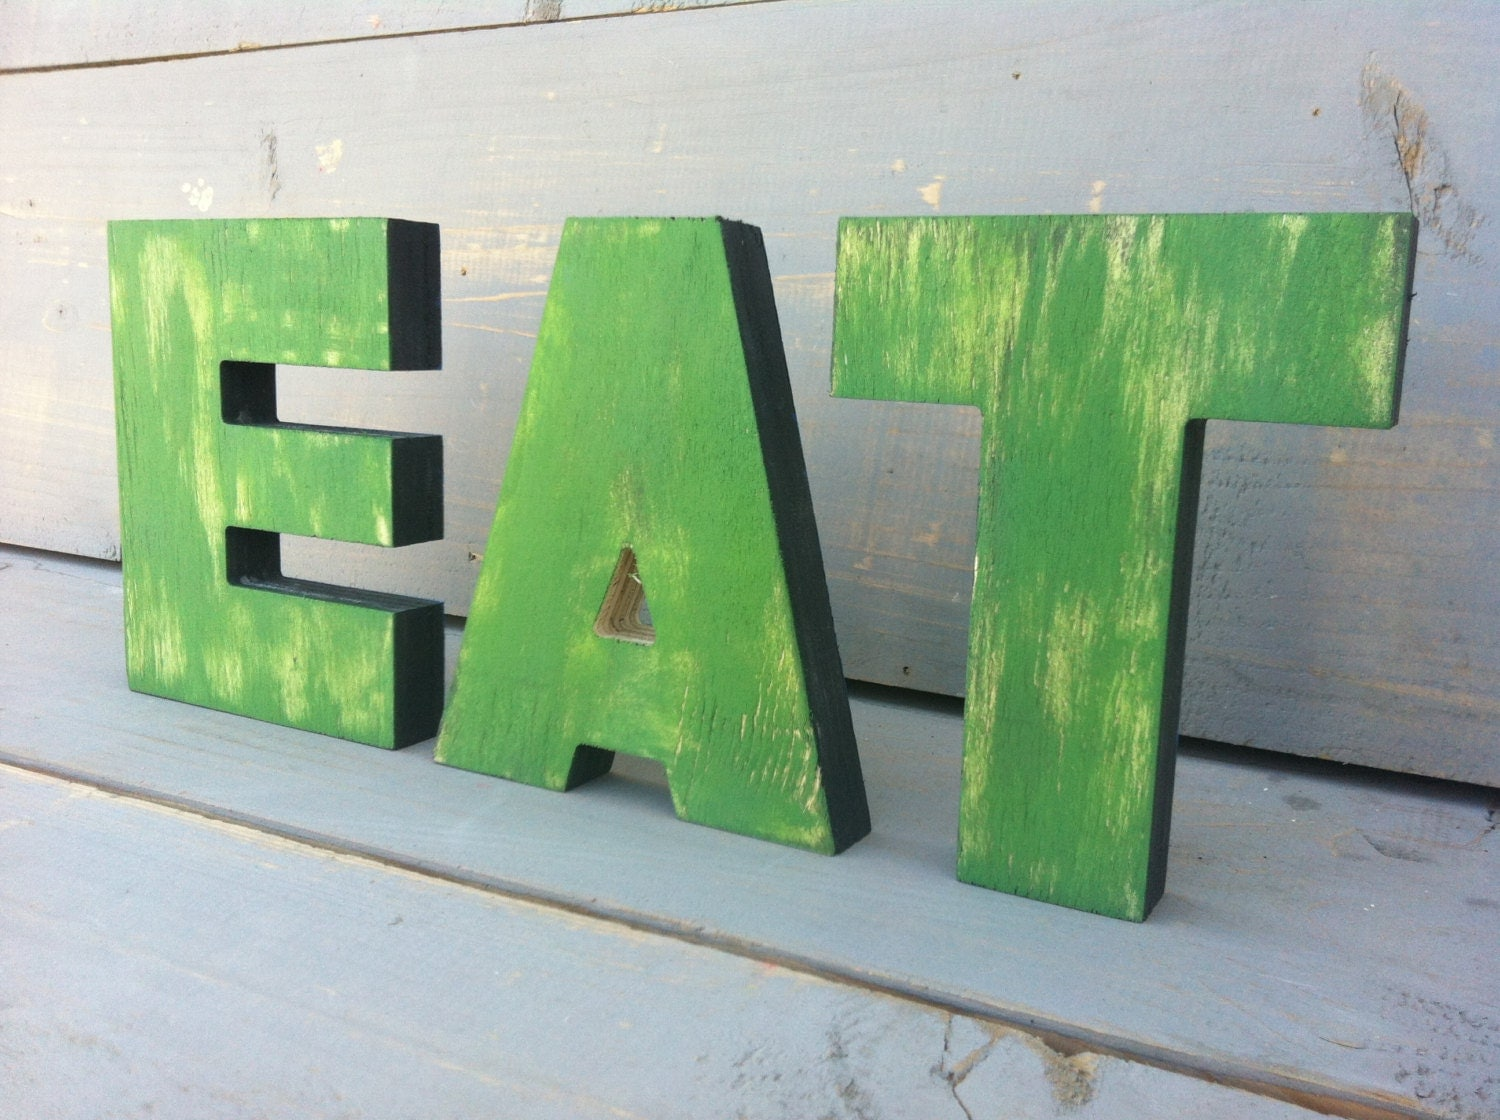 Kitchen rustic wall decor wooden letters eat 2 words by sunfla for Kitchen letters decoration